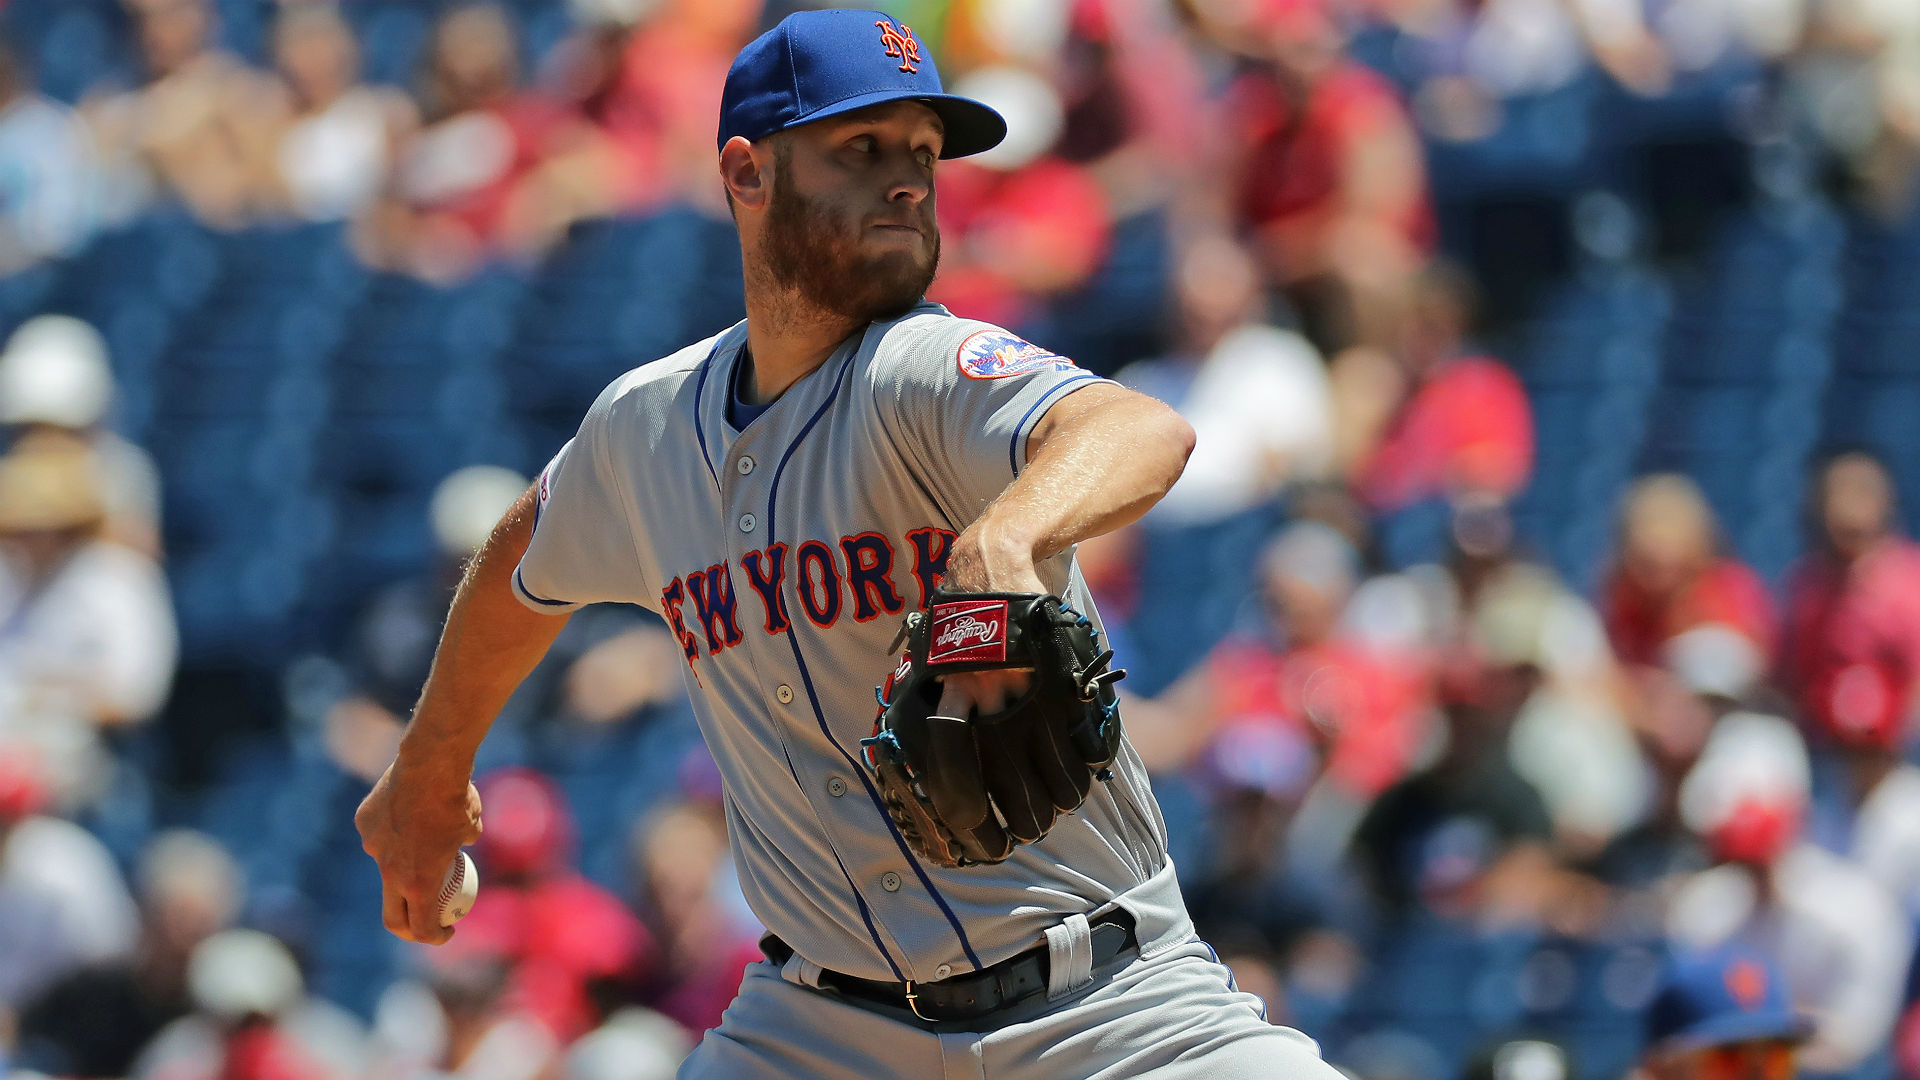 MLB trade rumors: Zack Wheeler's value 'more or less' destroyed after being placed on IL